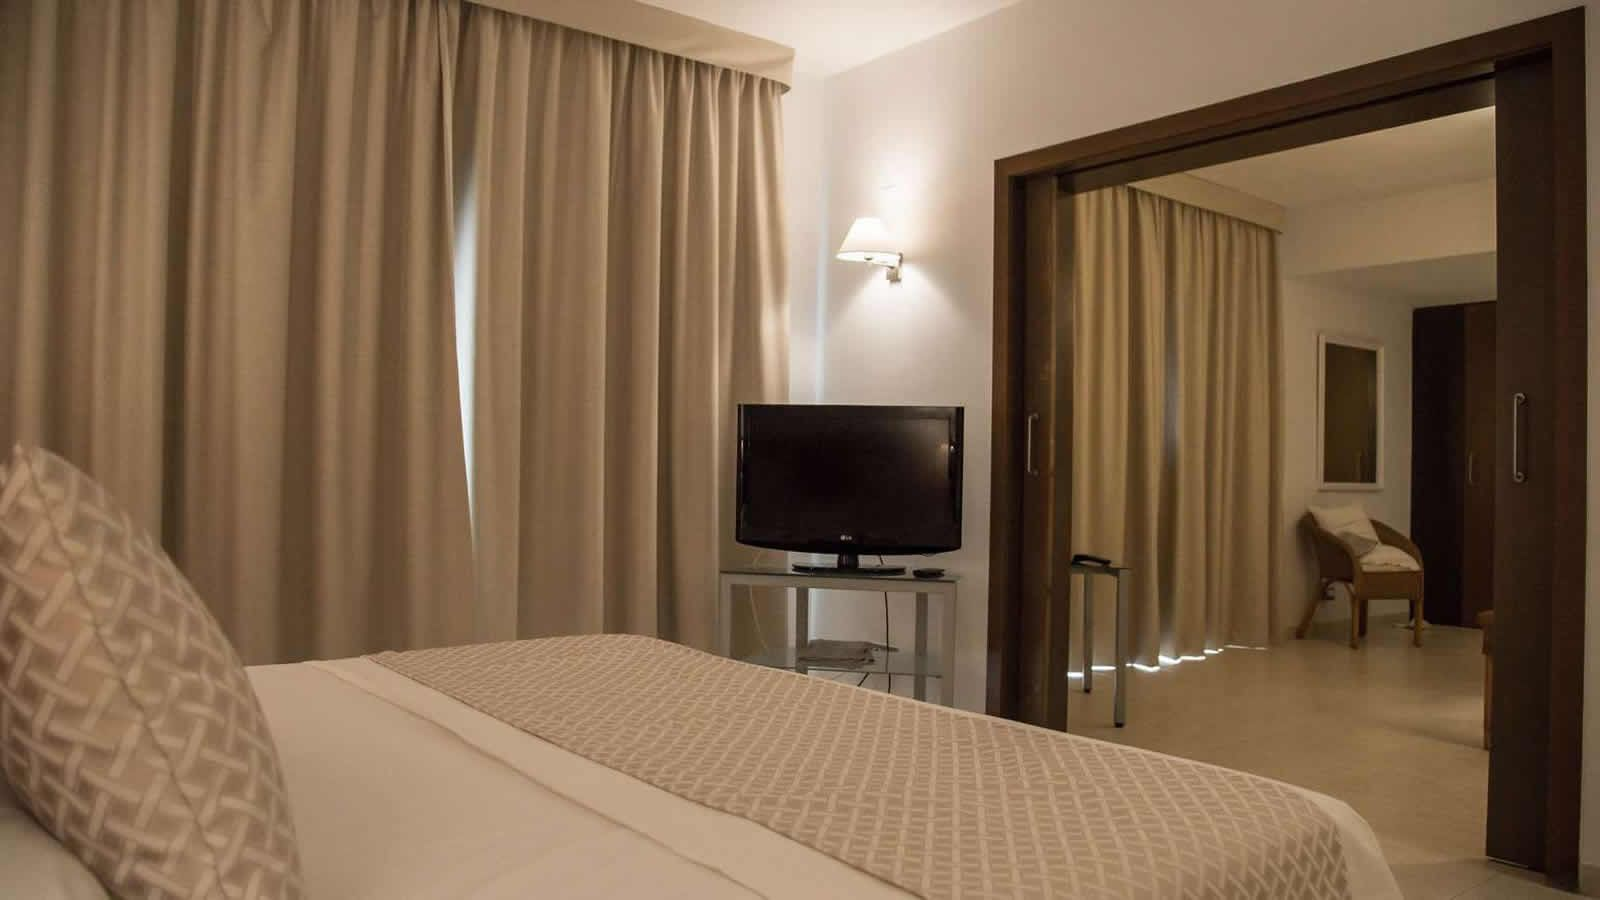 Delta Suite Room at the Carlos III Hotel in Alcanar - San Carlos de la Rapita – the Ebro Delta